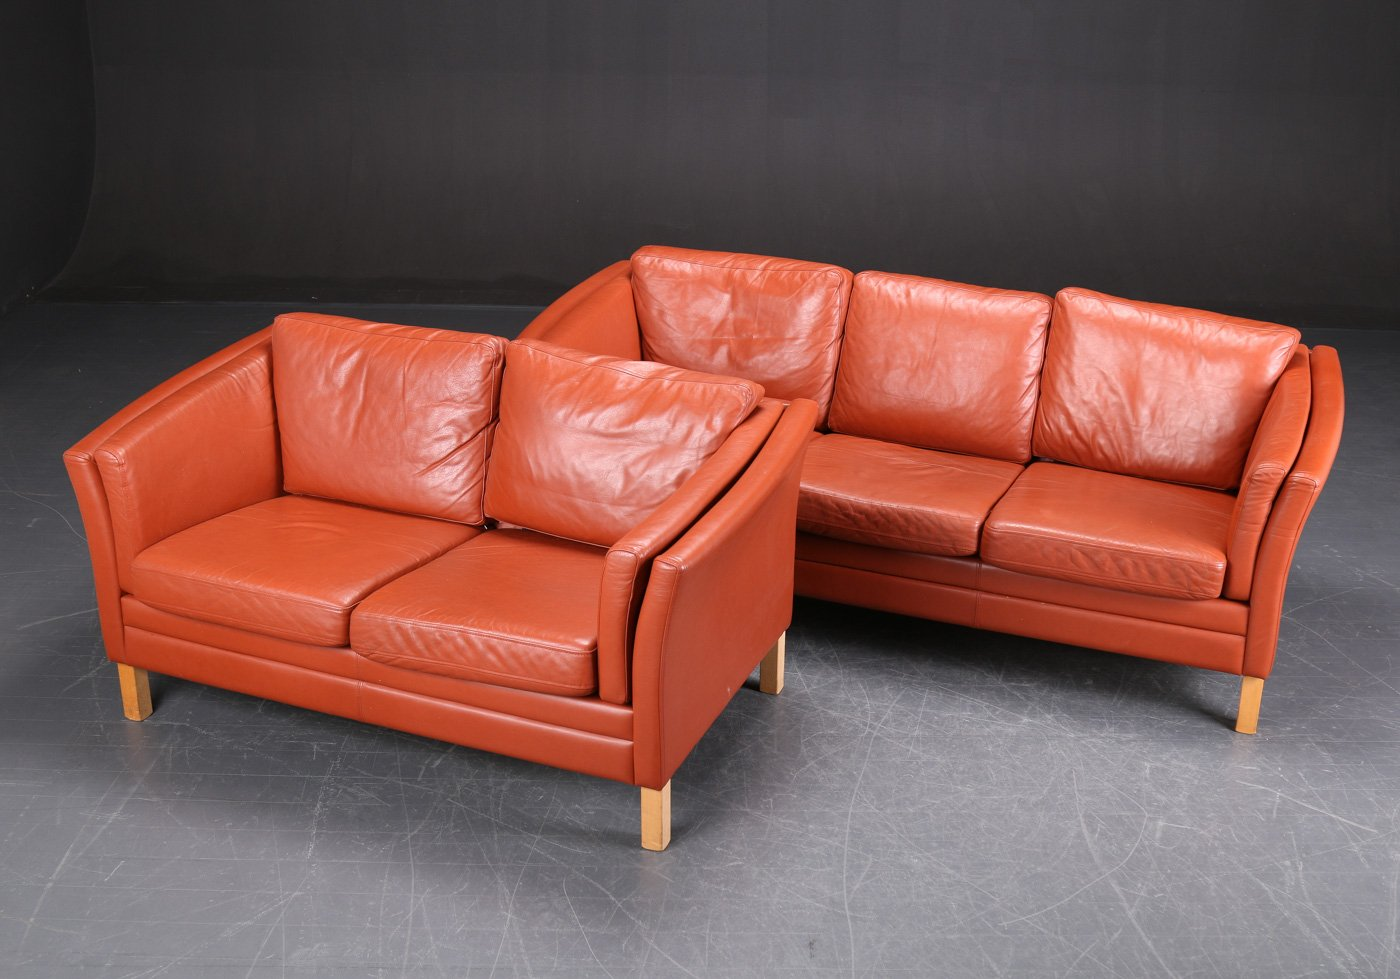 danish cognac leather sofas set of 2 for sale at pamono. Black Bedroom Furniture Sets. Home Design Ideas